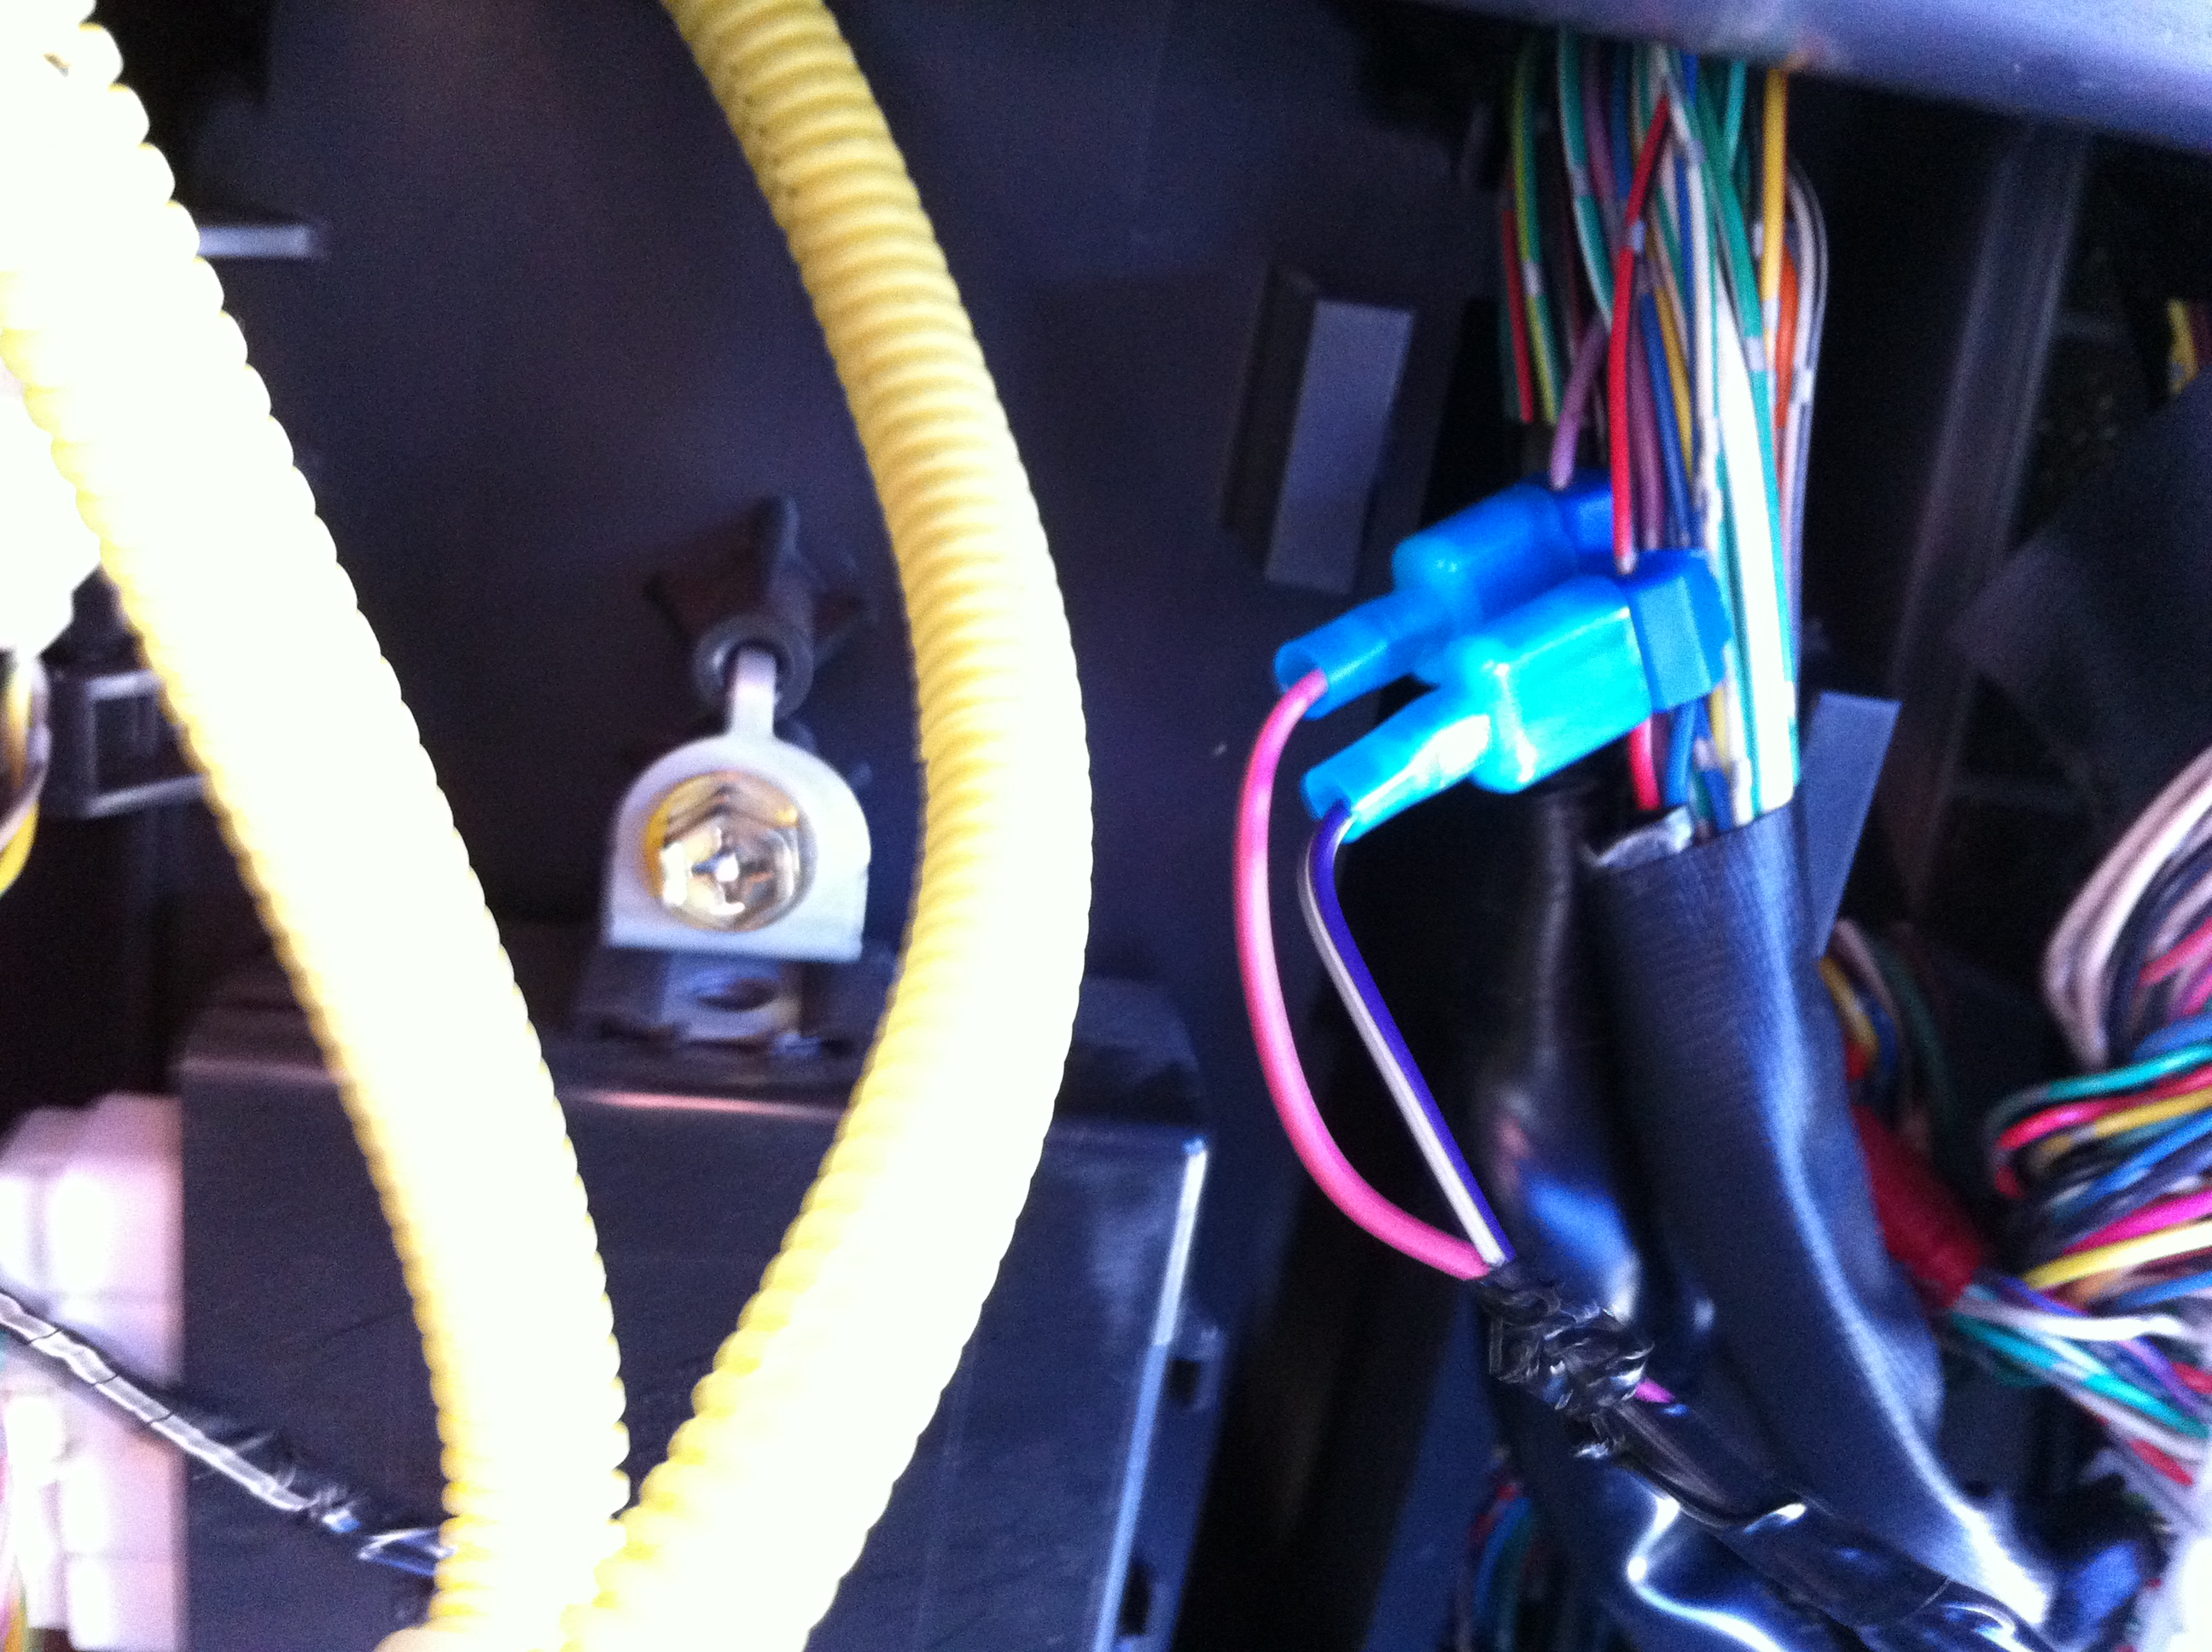 1998 land cruiser radio wiring diagram where are the intermediates and transition states in this stereo lx 470 02 tlc faq